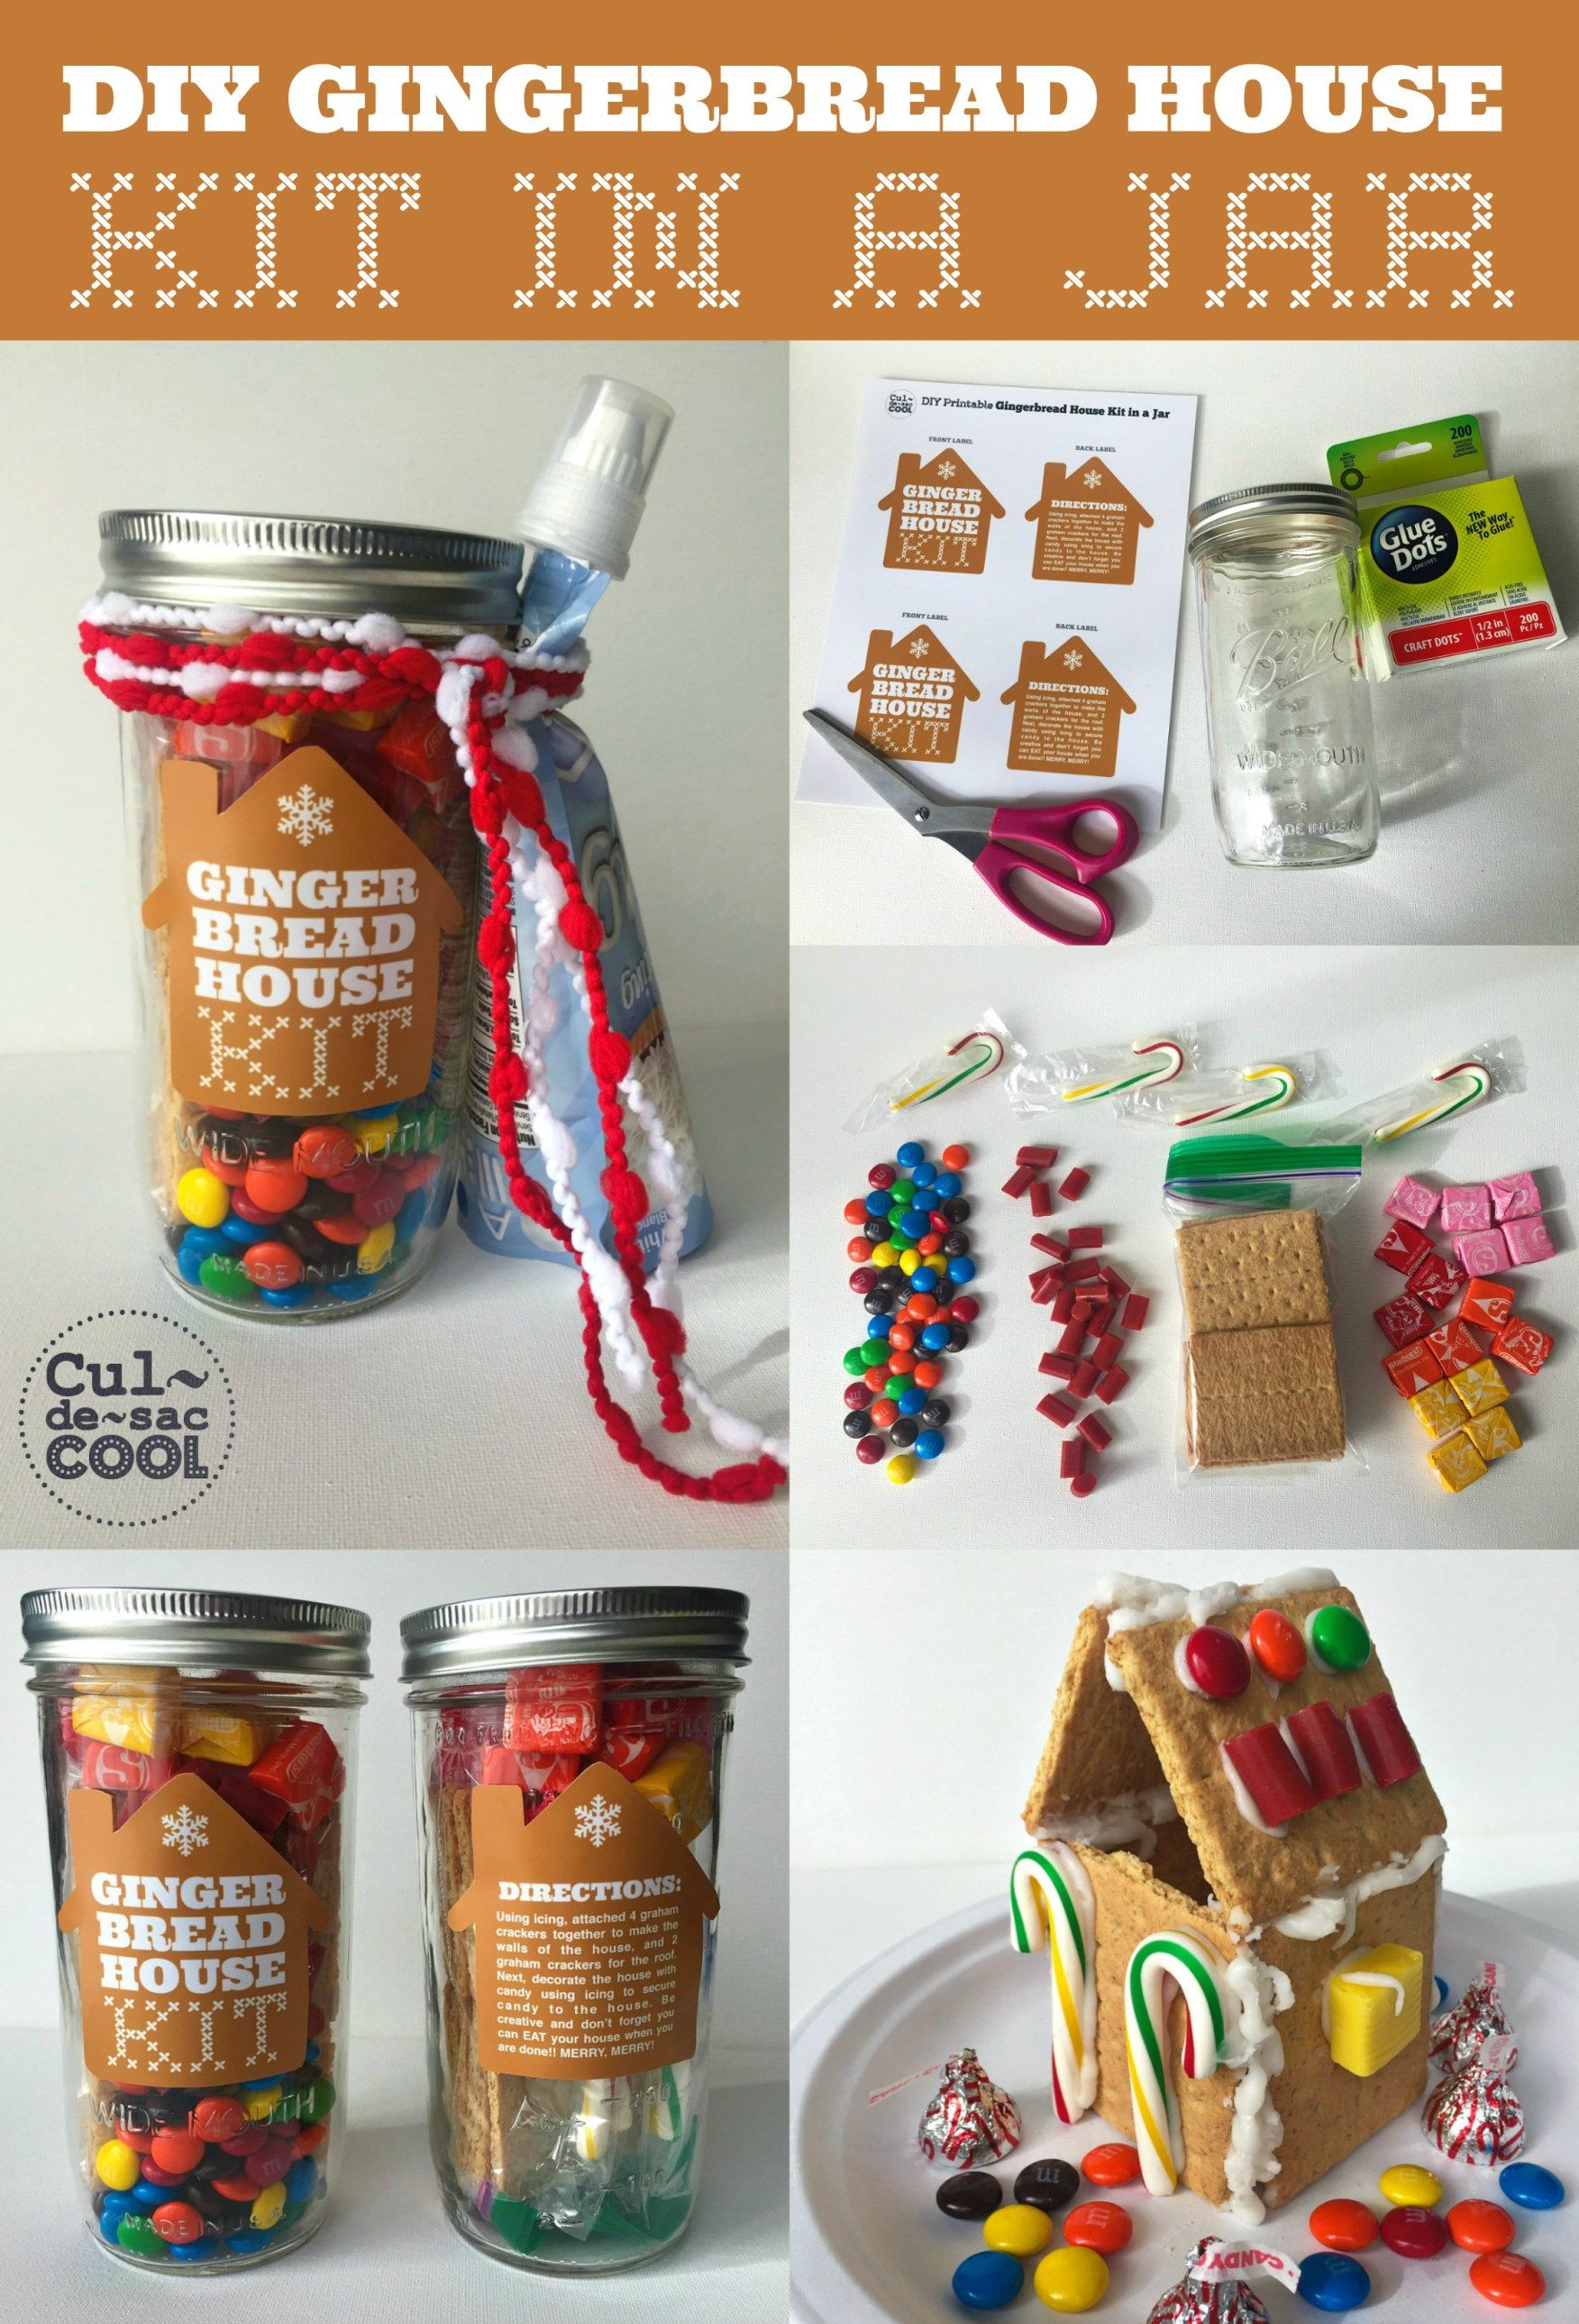 Diy gingerbread house kit in a jar bake sale pinterest diy gingerbread house kit in a jar solutioingenieria Choice Image